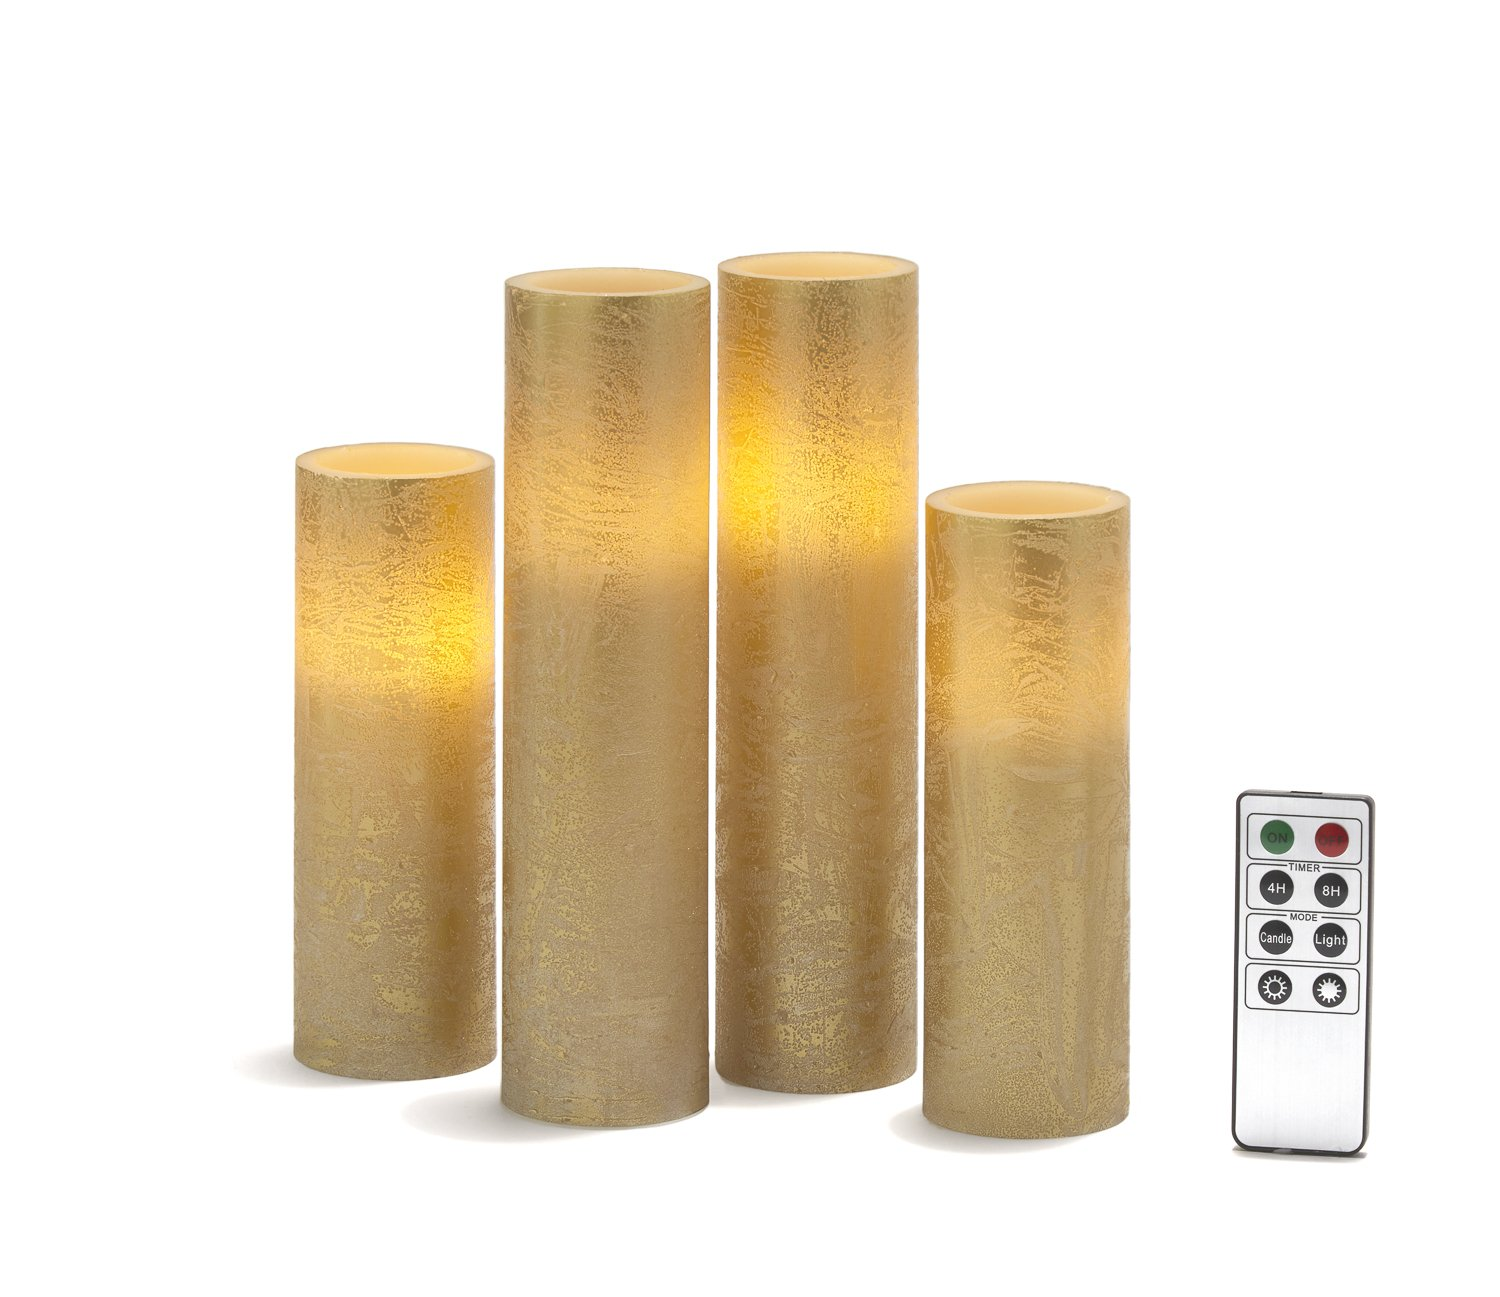 LampLust 4 Gold Slim Flameless Pillar Candles with Warm White LEDs, Textured Finish, Batteries & Remote Included